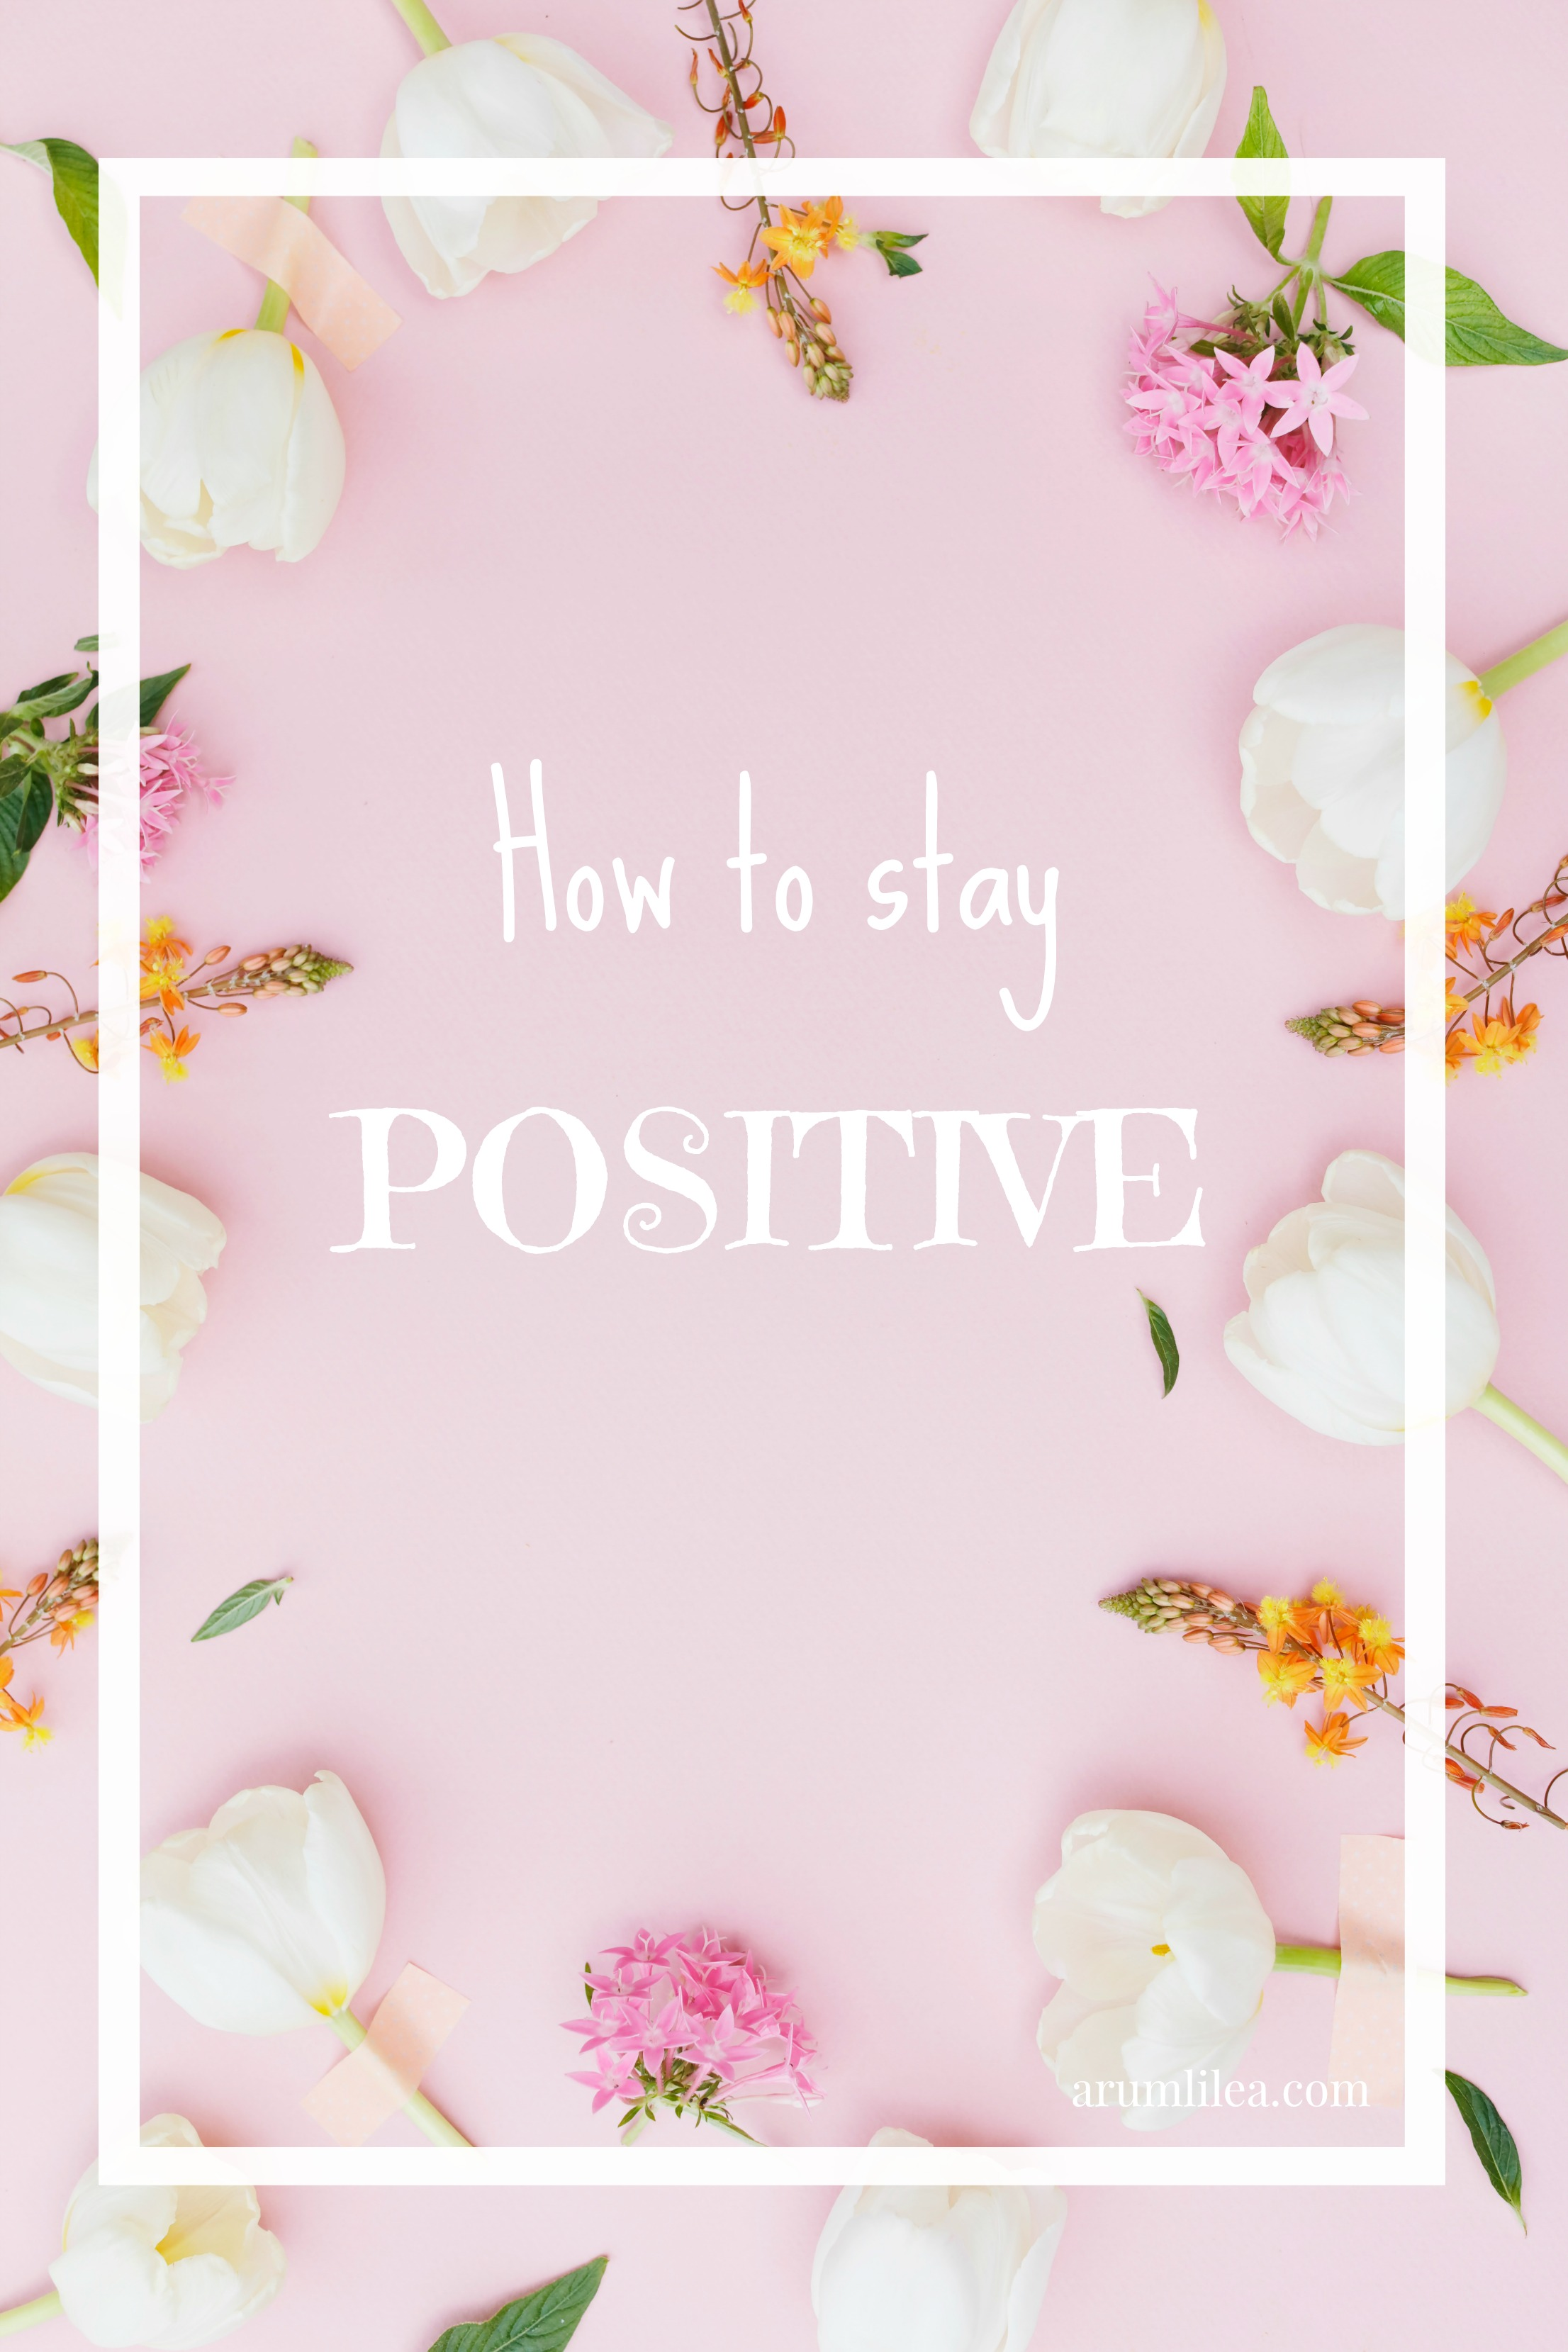 How To Stay Positive: tips on how to live a full and happy life. arumlilea.com